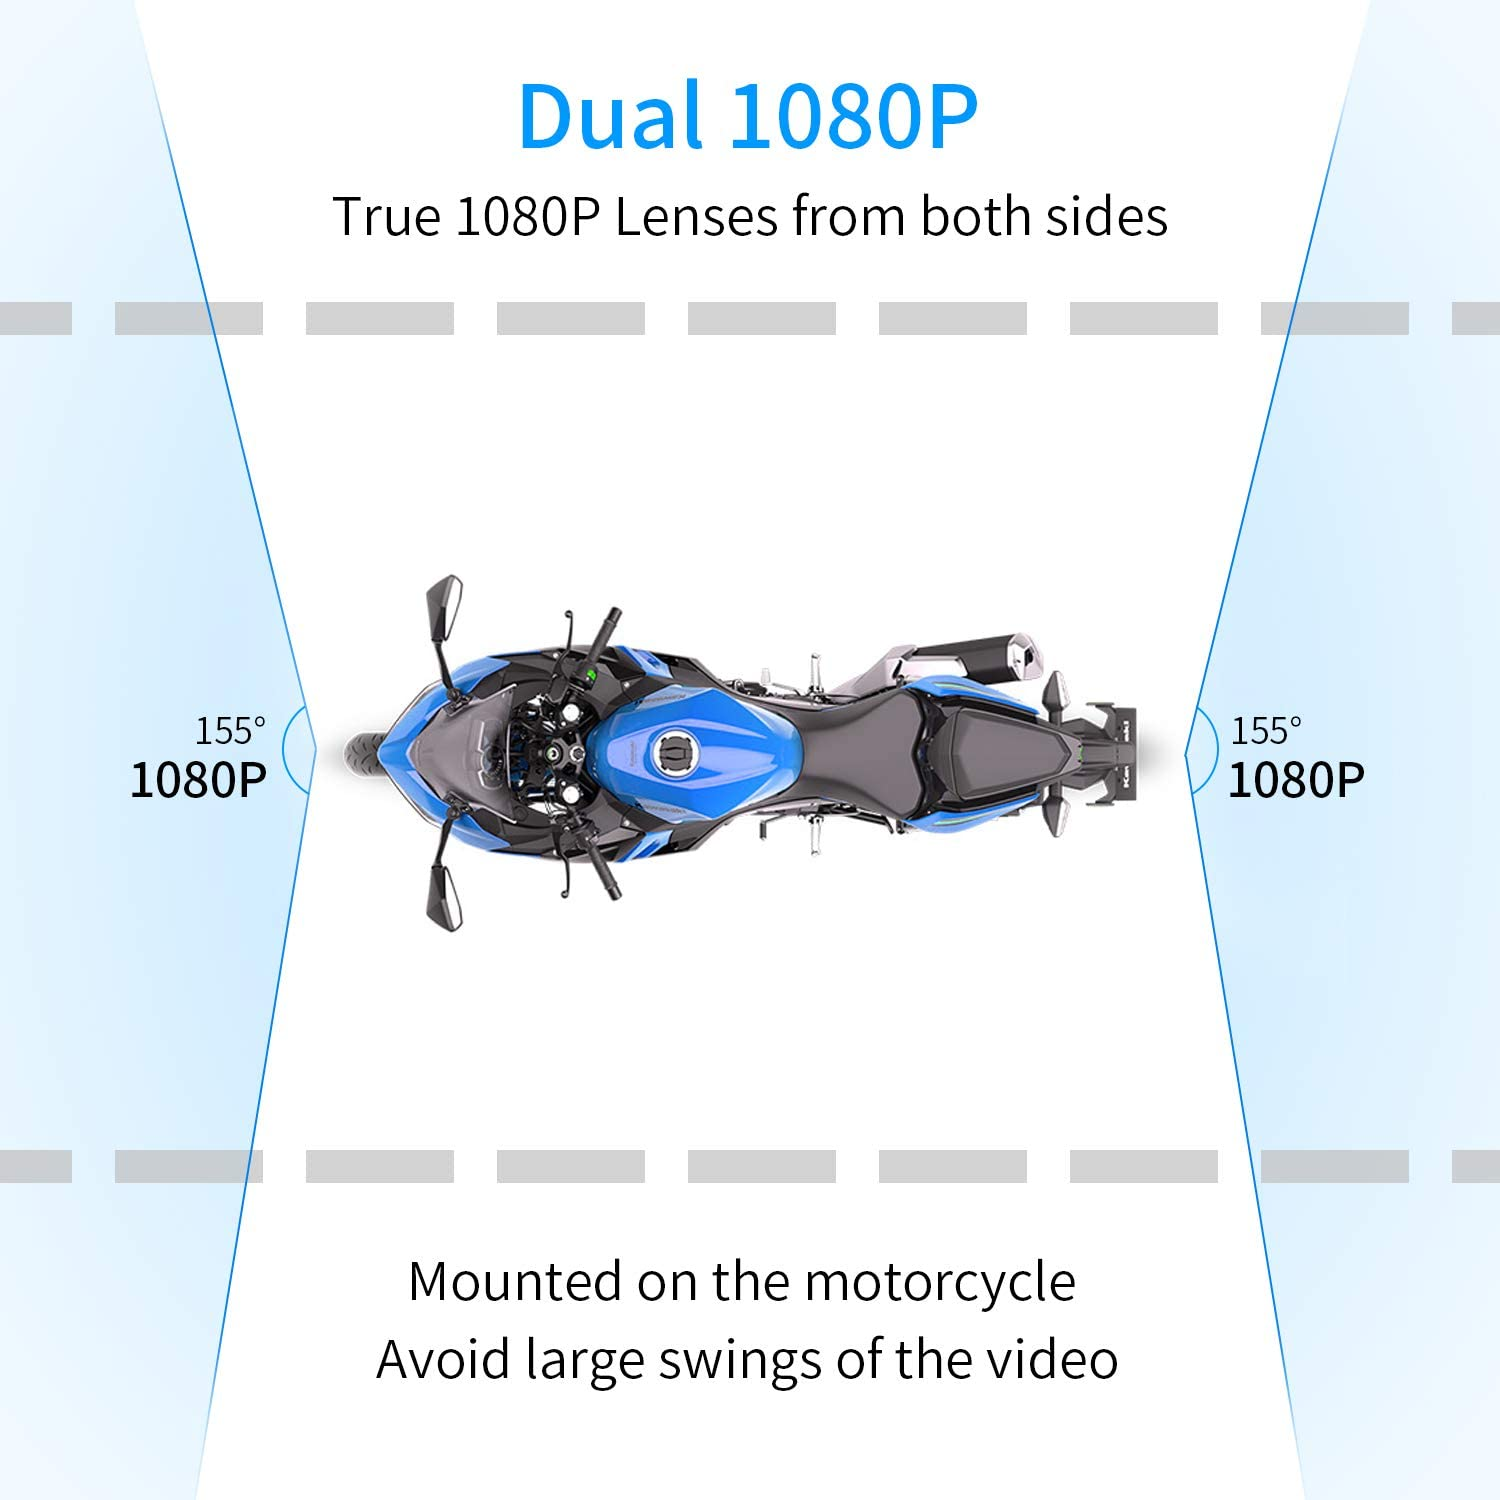 Motowolf M6 Motorcycle Recording Camera System Waterproof Dual Lens 1080P Dash Cam Dvr Sports Action Camera Security Video Recording with 2.7 LCD 155 Degree Angle WiFi /& GPS Support 256G Max